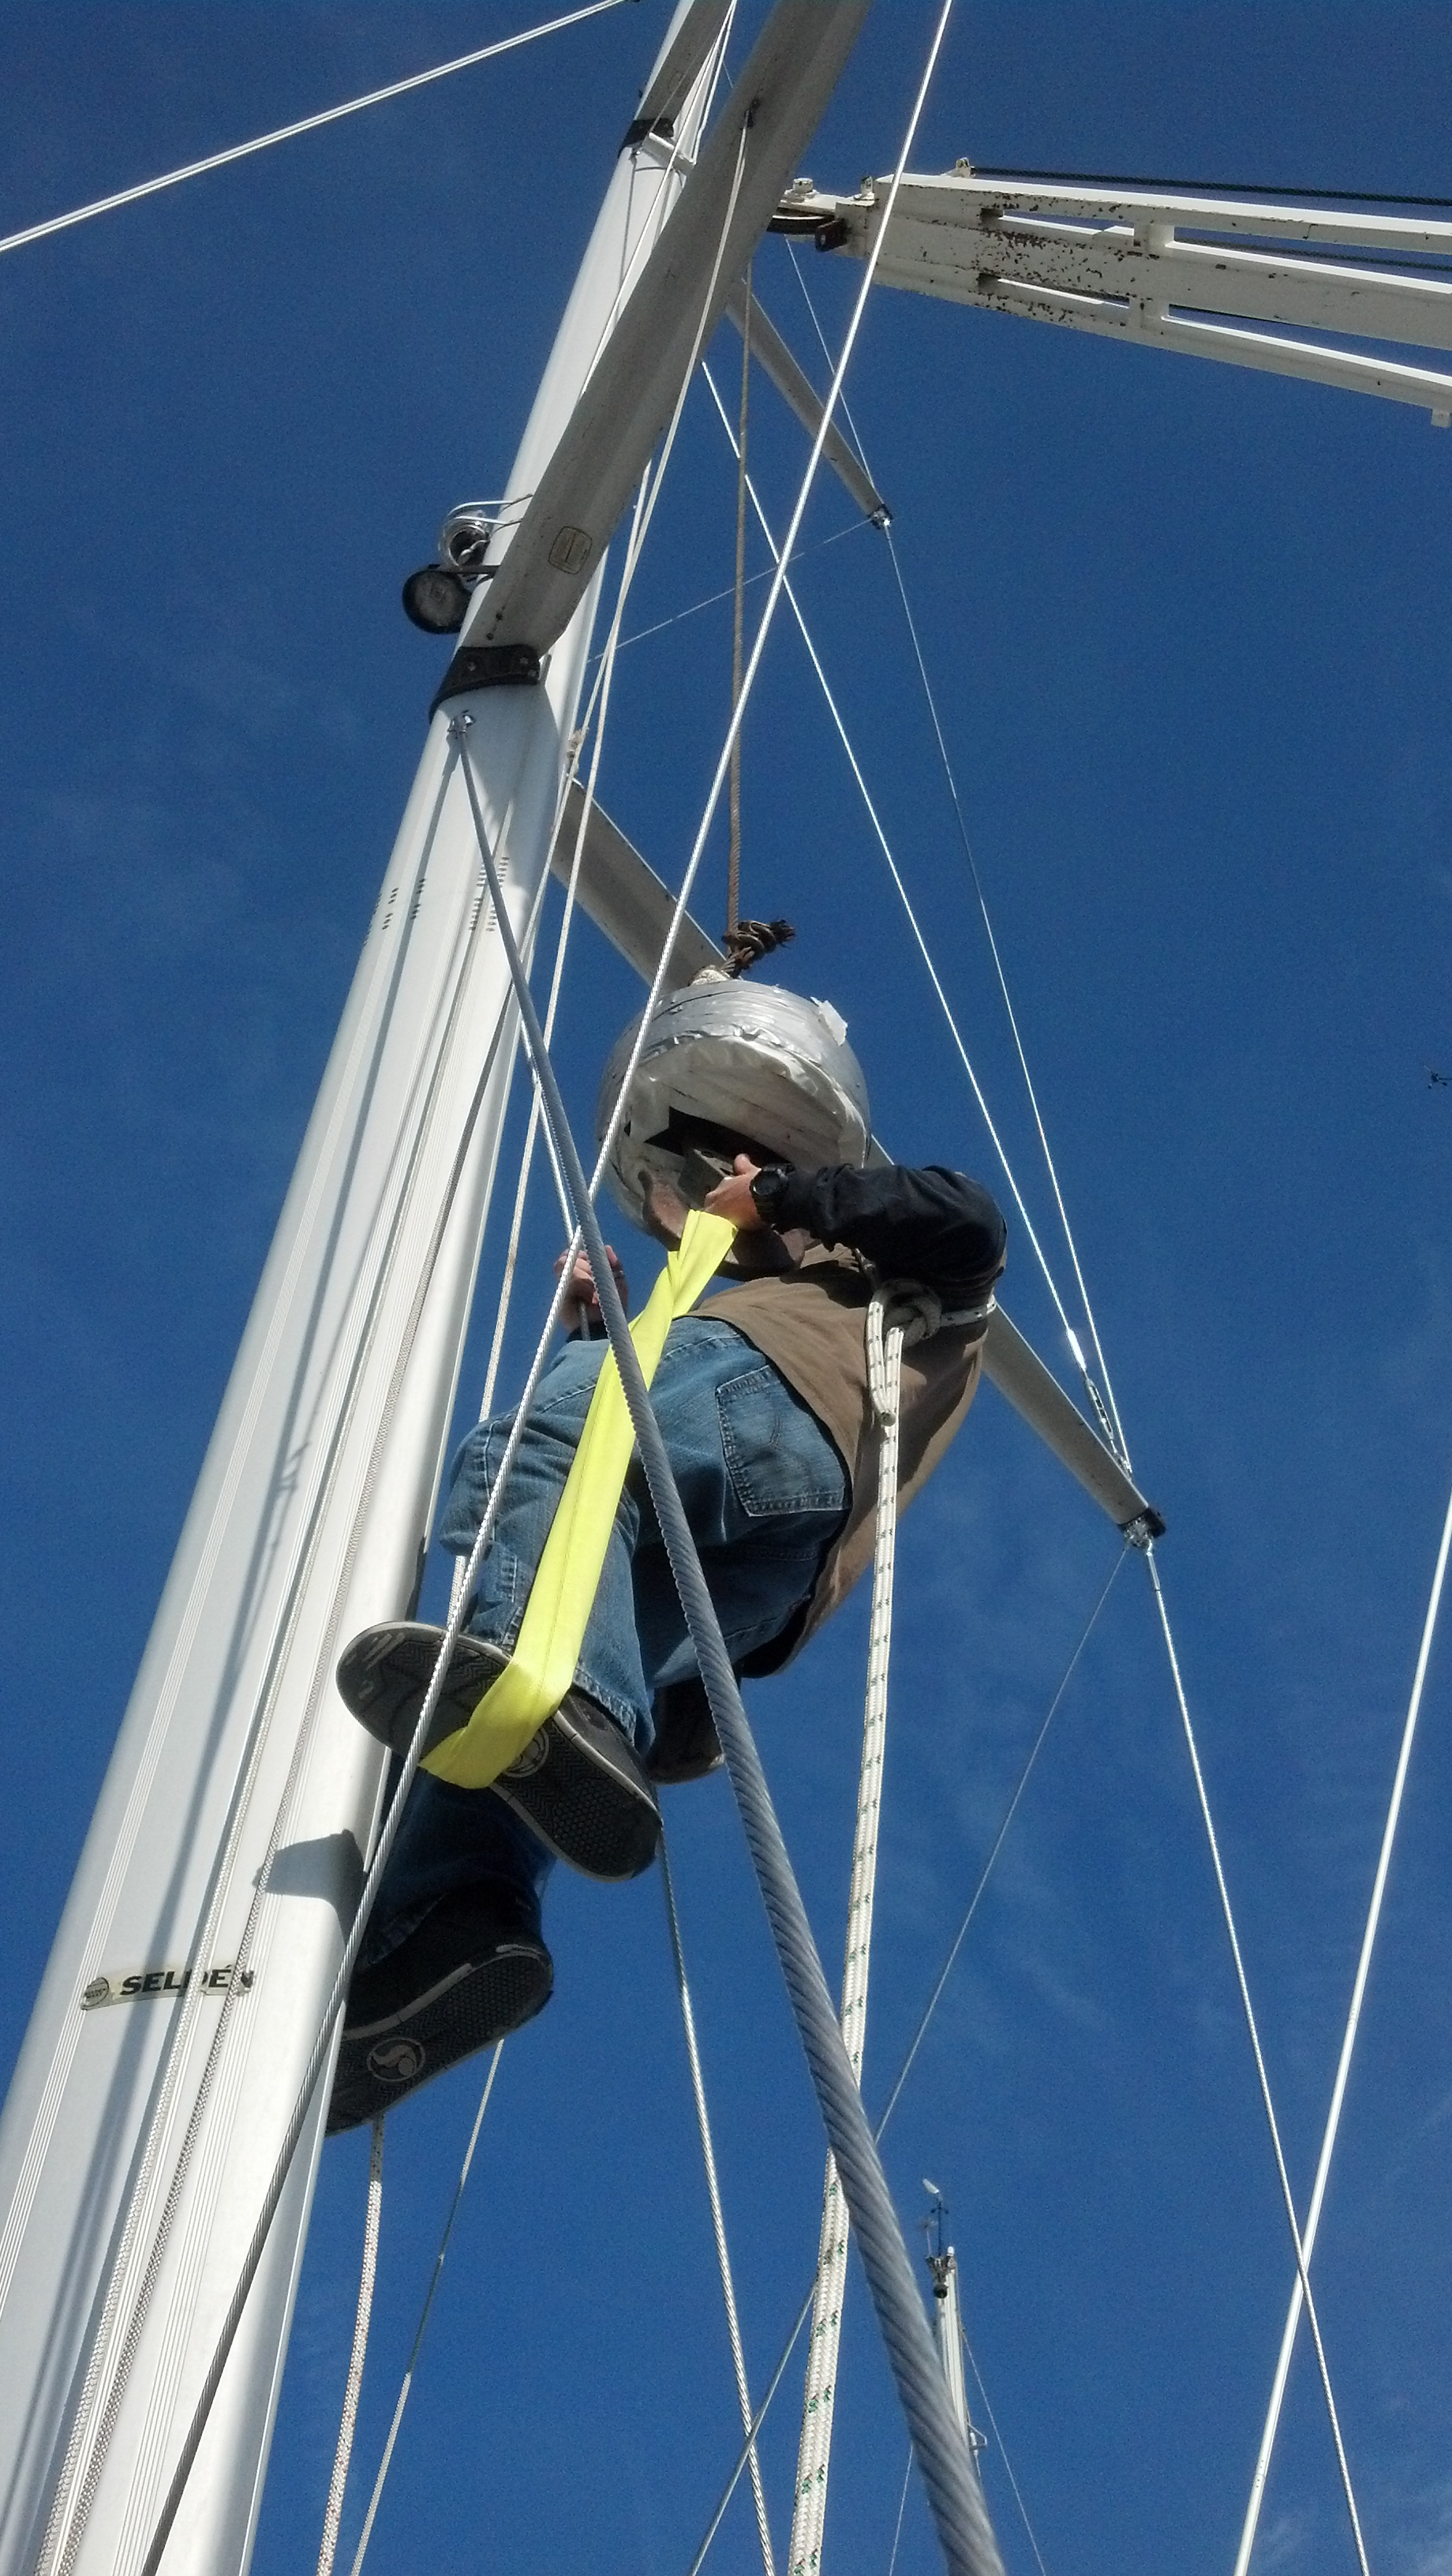 Un-stepping the Mast – The Rigging Company